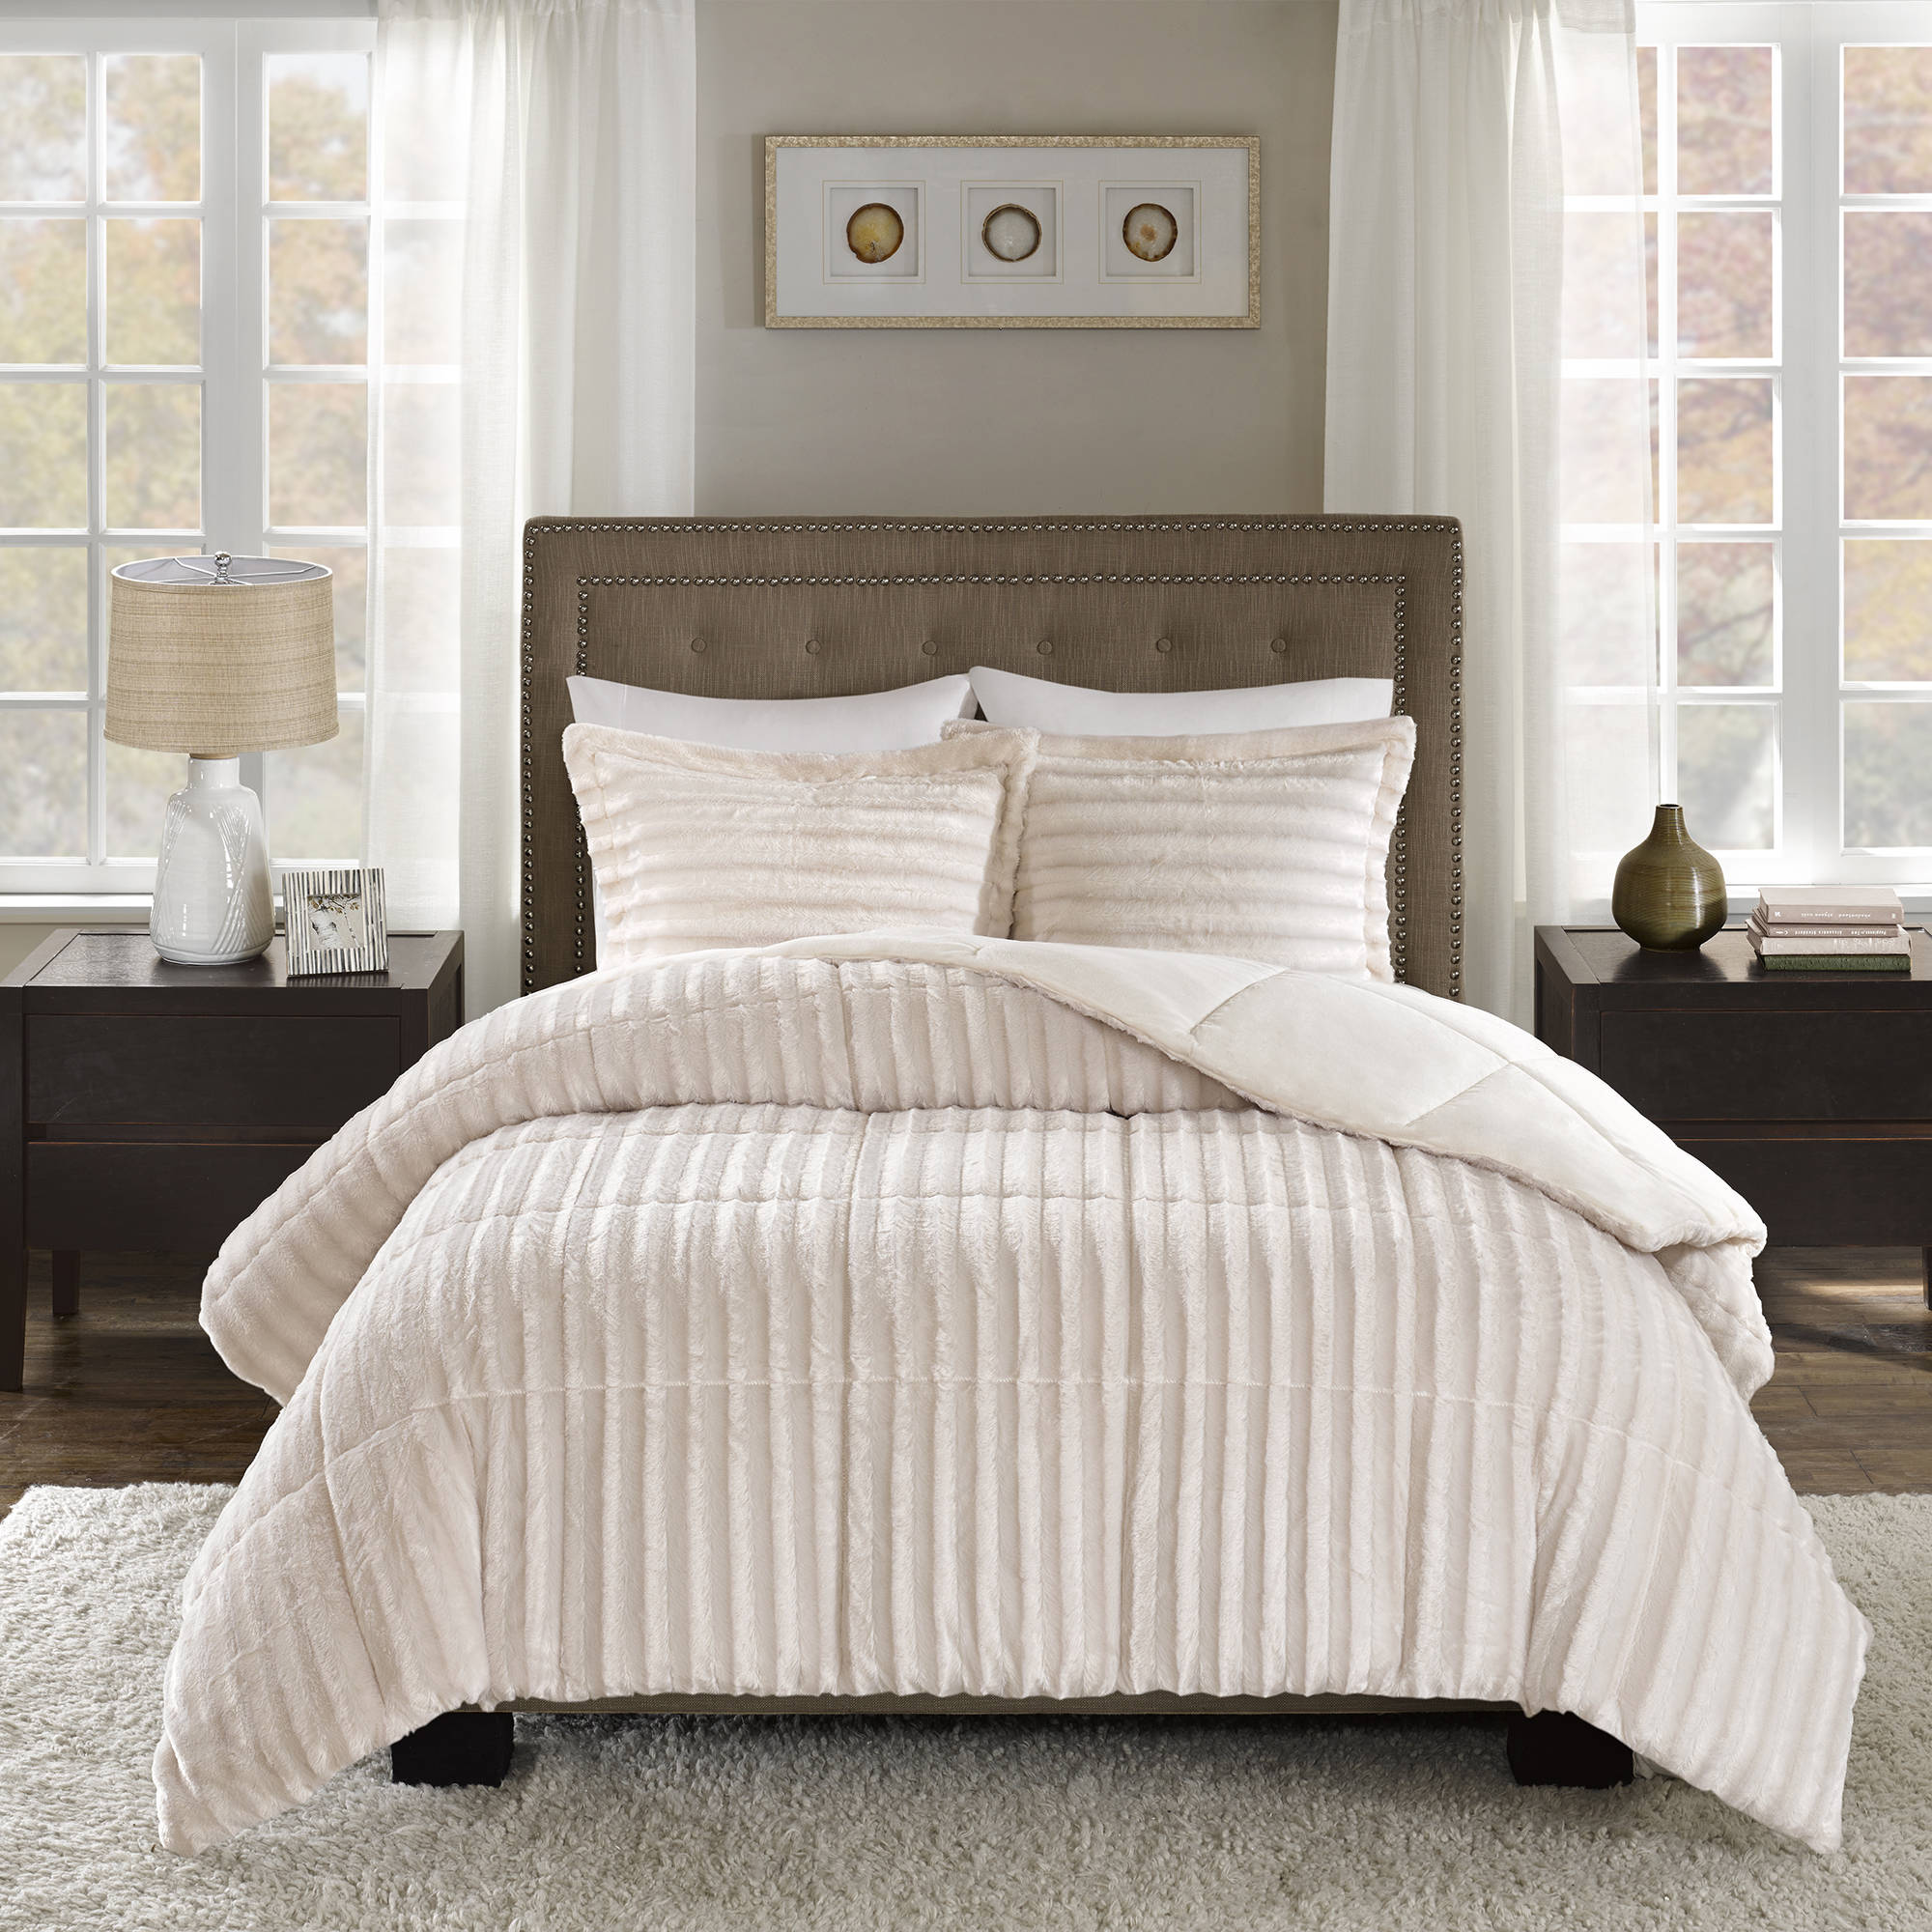 luxury gallery cream strawberry comforter fur faux